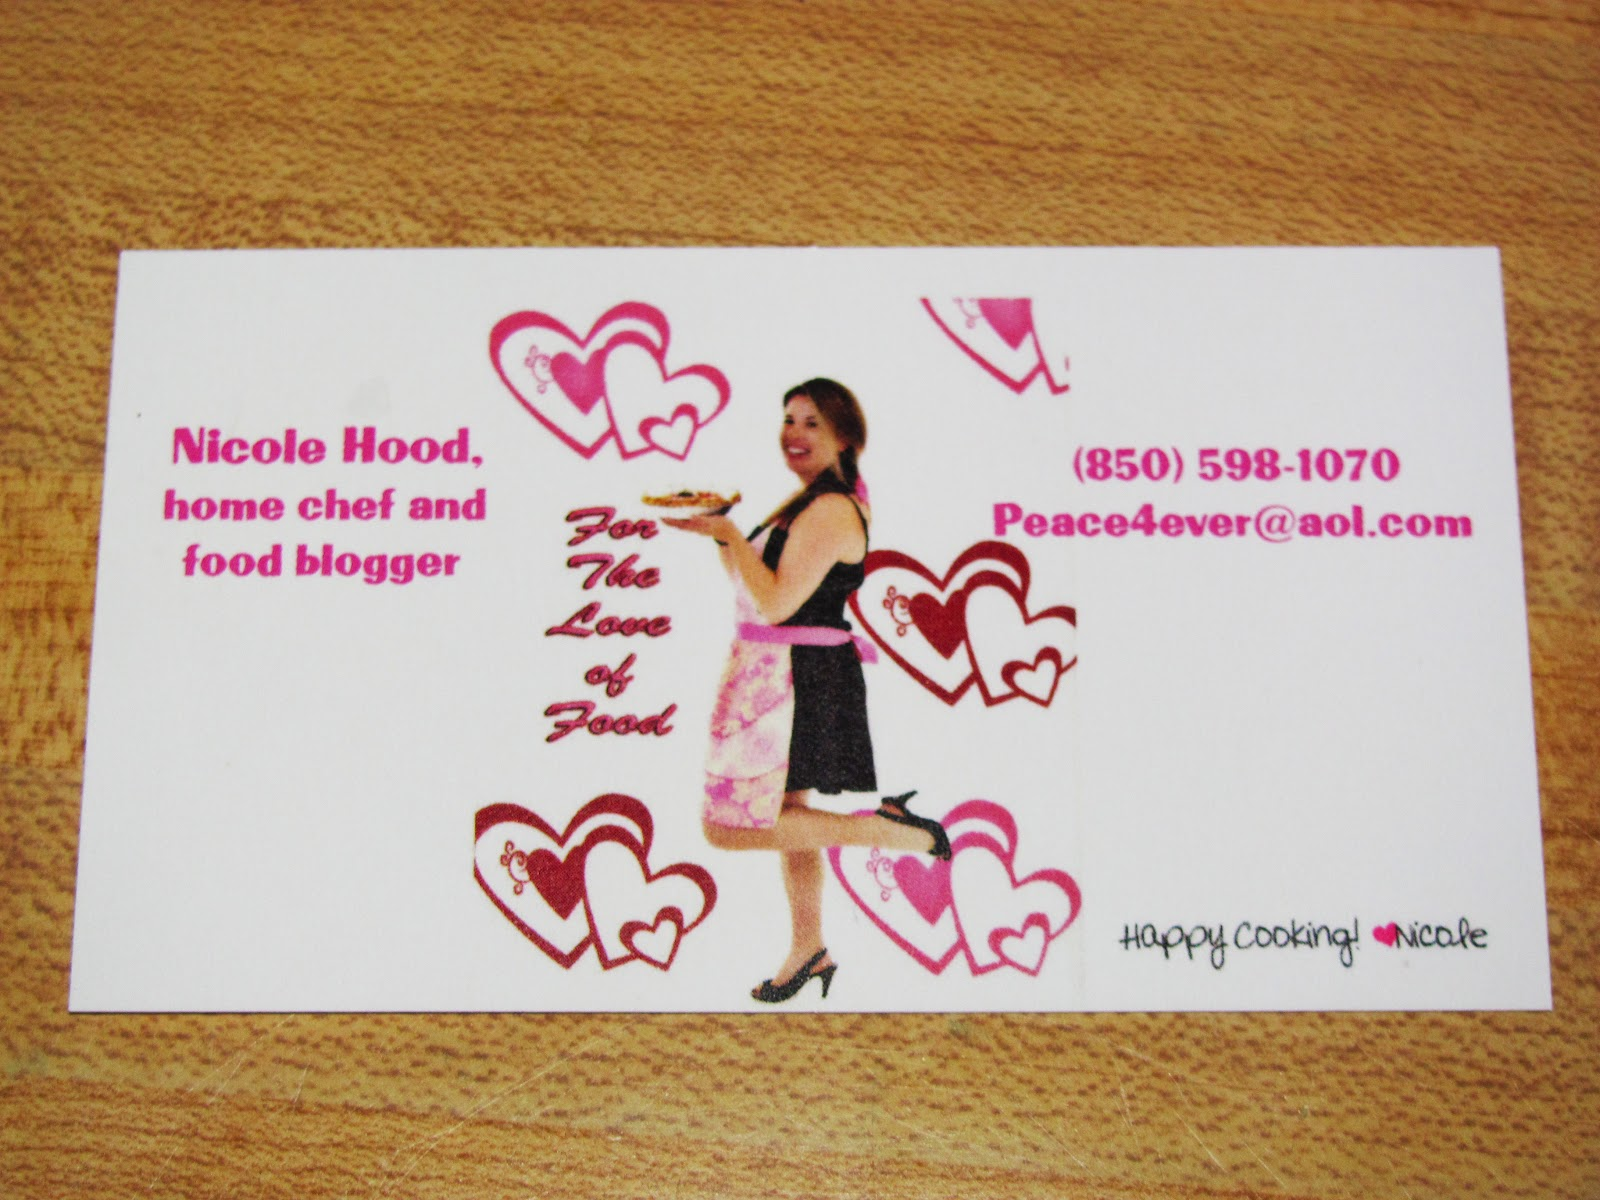 For the Love of Food: New blog business cards!